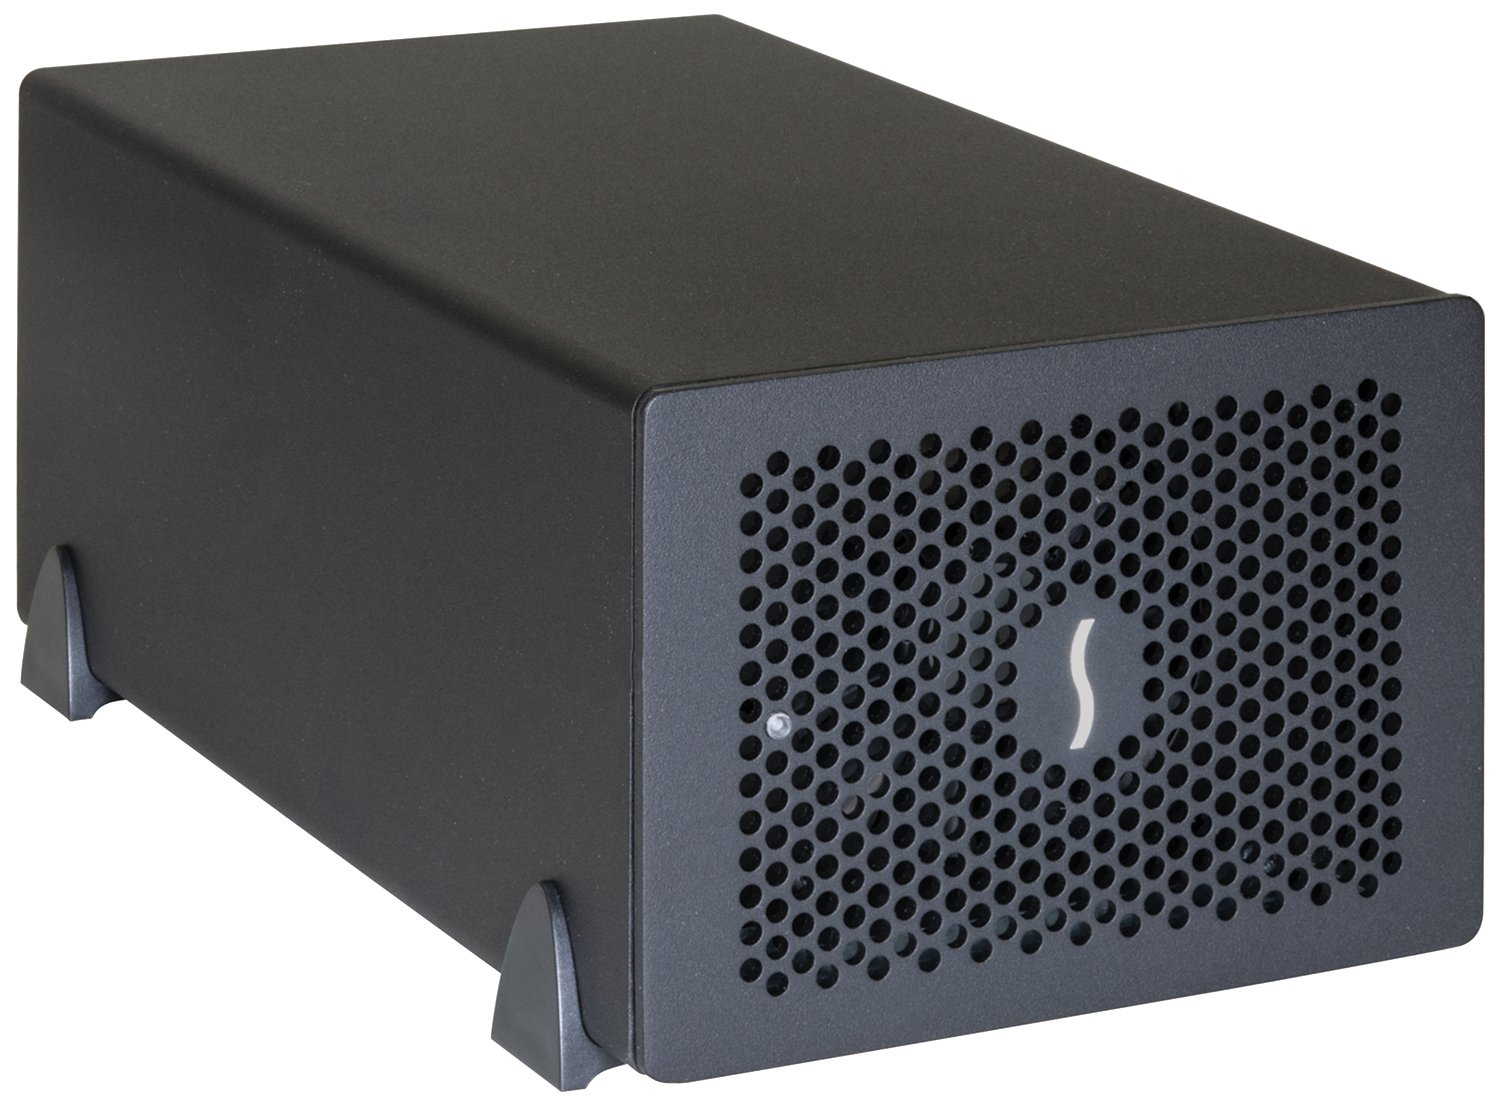 Sonnet Echo Express SEII Thunderbolt 2-to-PCIe Expansion Chassis (ECHO-EXP-SE2) by Sonnet Technologies